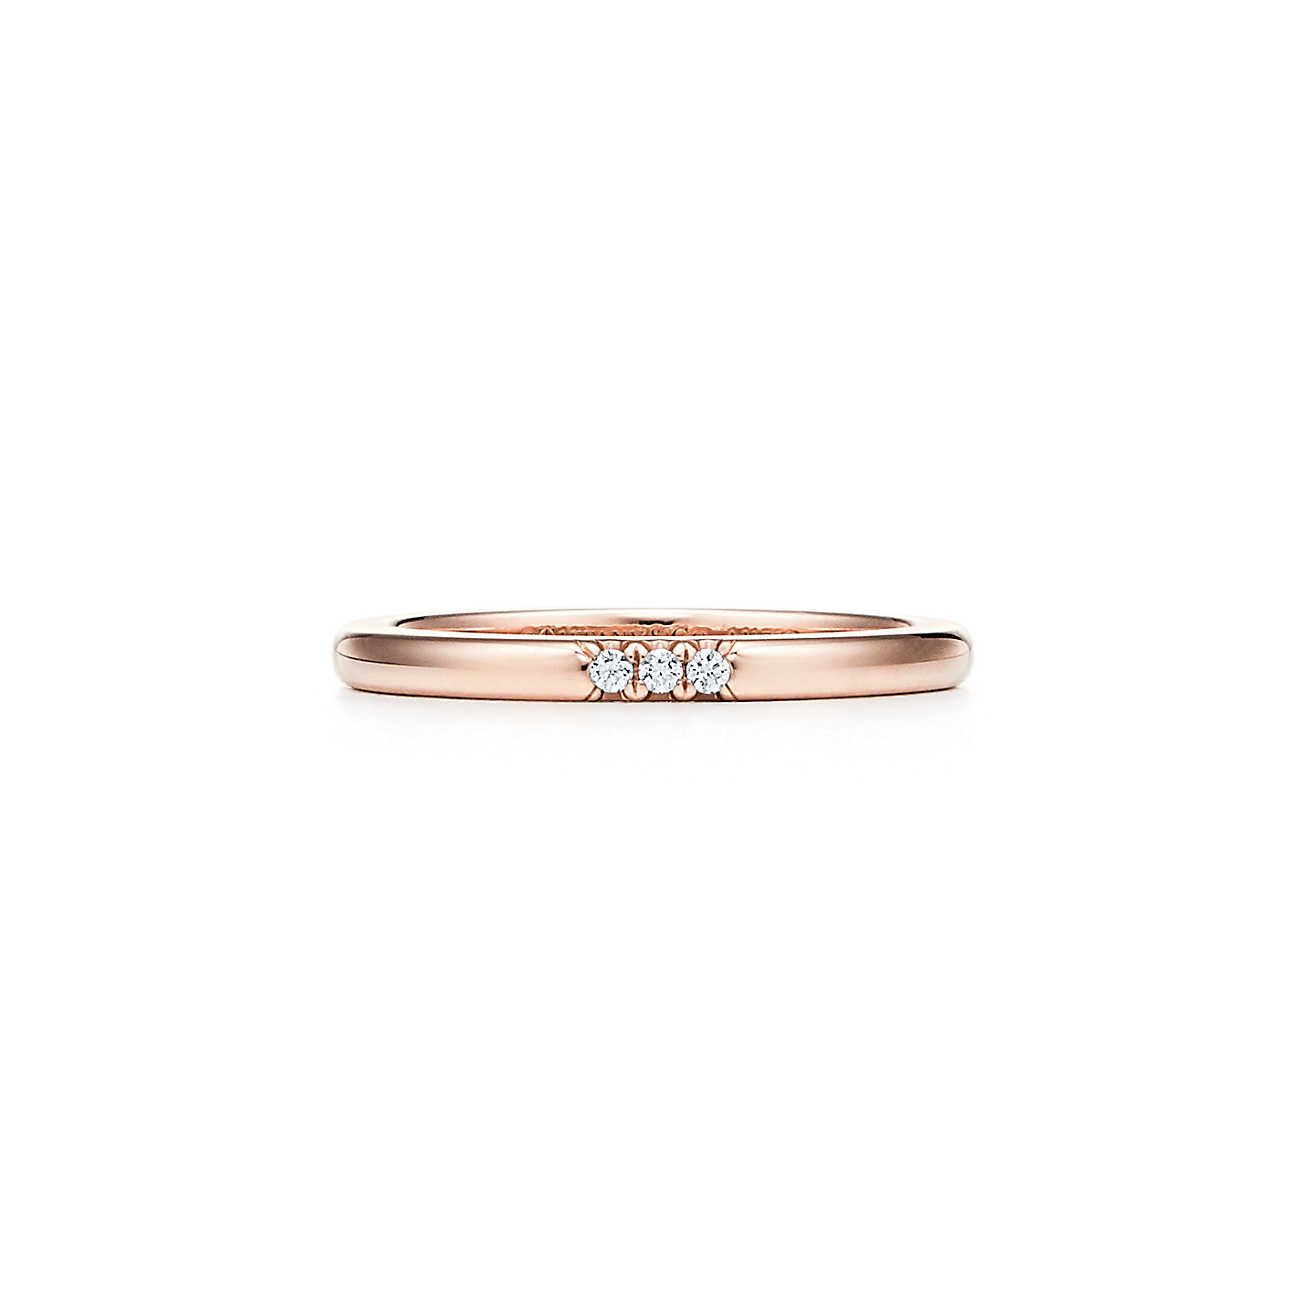 Tiffany Classic Wedding Band Ring In 18k Rose Gold With Diamonds 2 Mm Wide Tiffany Co In 2020 Wedding Ring Bands Classic Wedding Band Wedding Bands